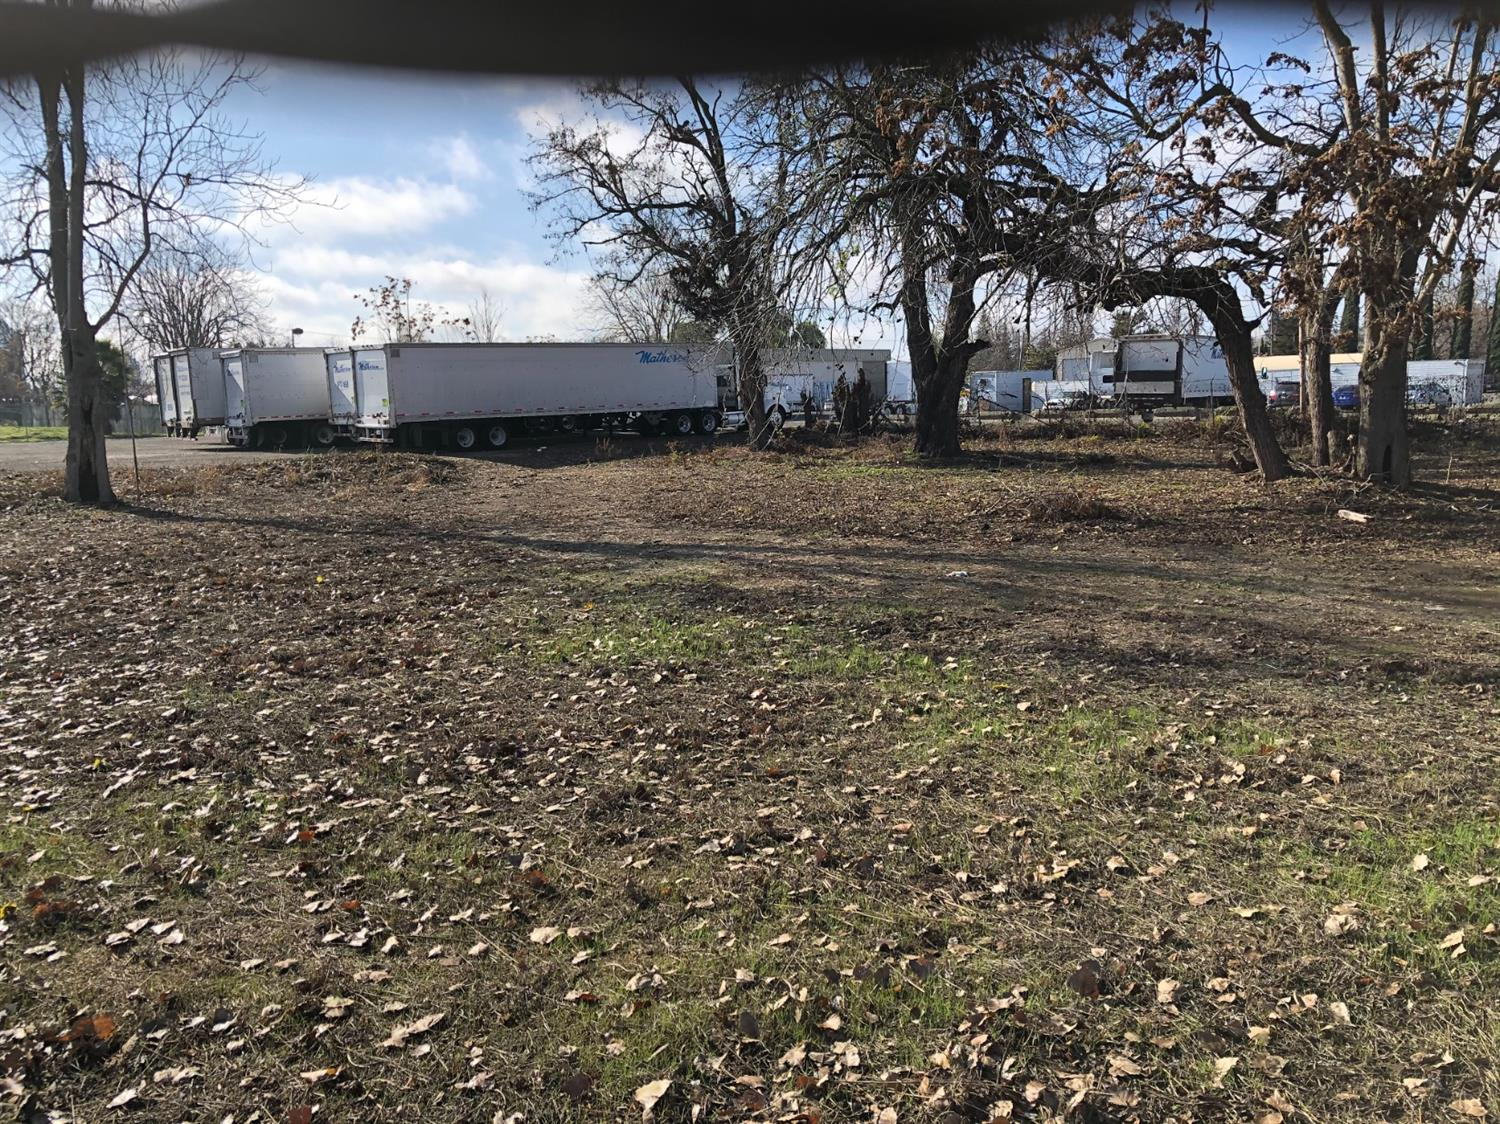 Nice level Industrial zoned lot surrounded  by two trucking companies. At this time lot is land locked... but N 5th st. according to the City of Sacramento specific plans for the River Dist. N 5th st. is going to continue through to Richards Blvd. But  check with City to be sure of this.